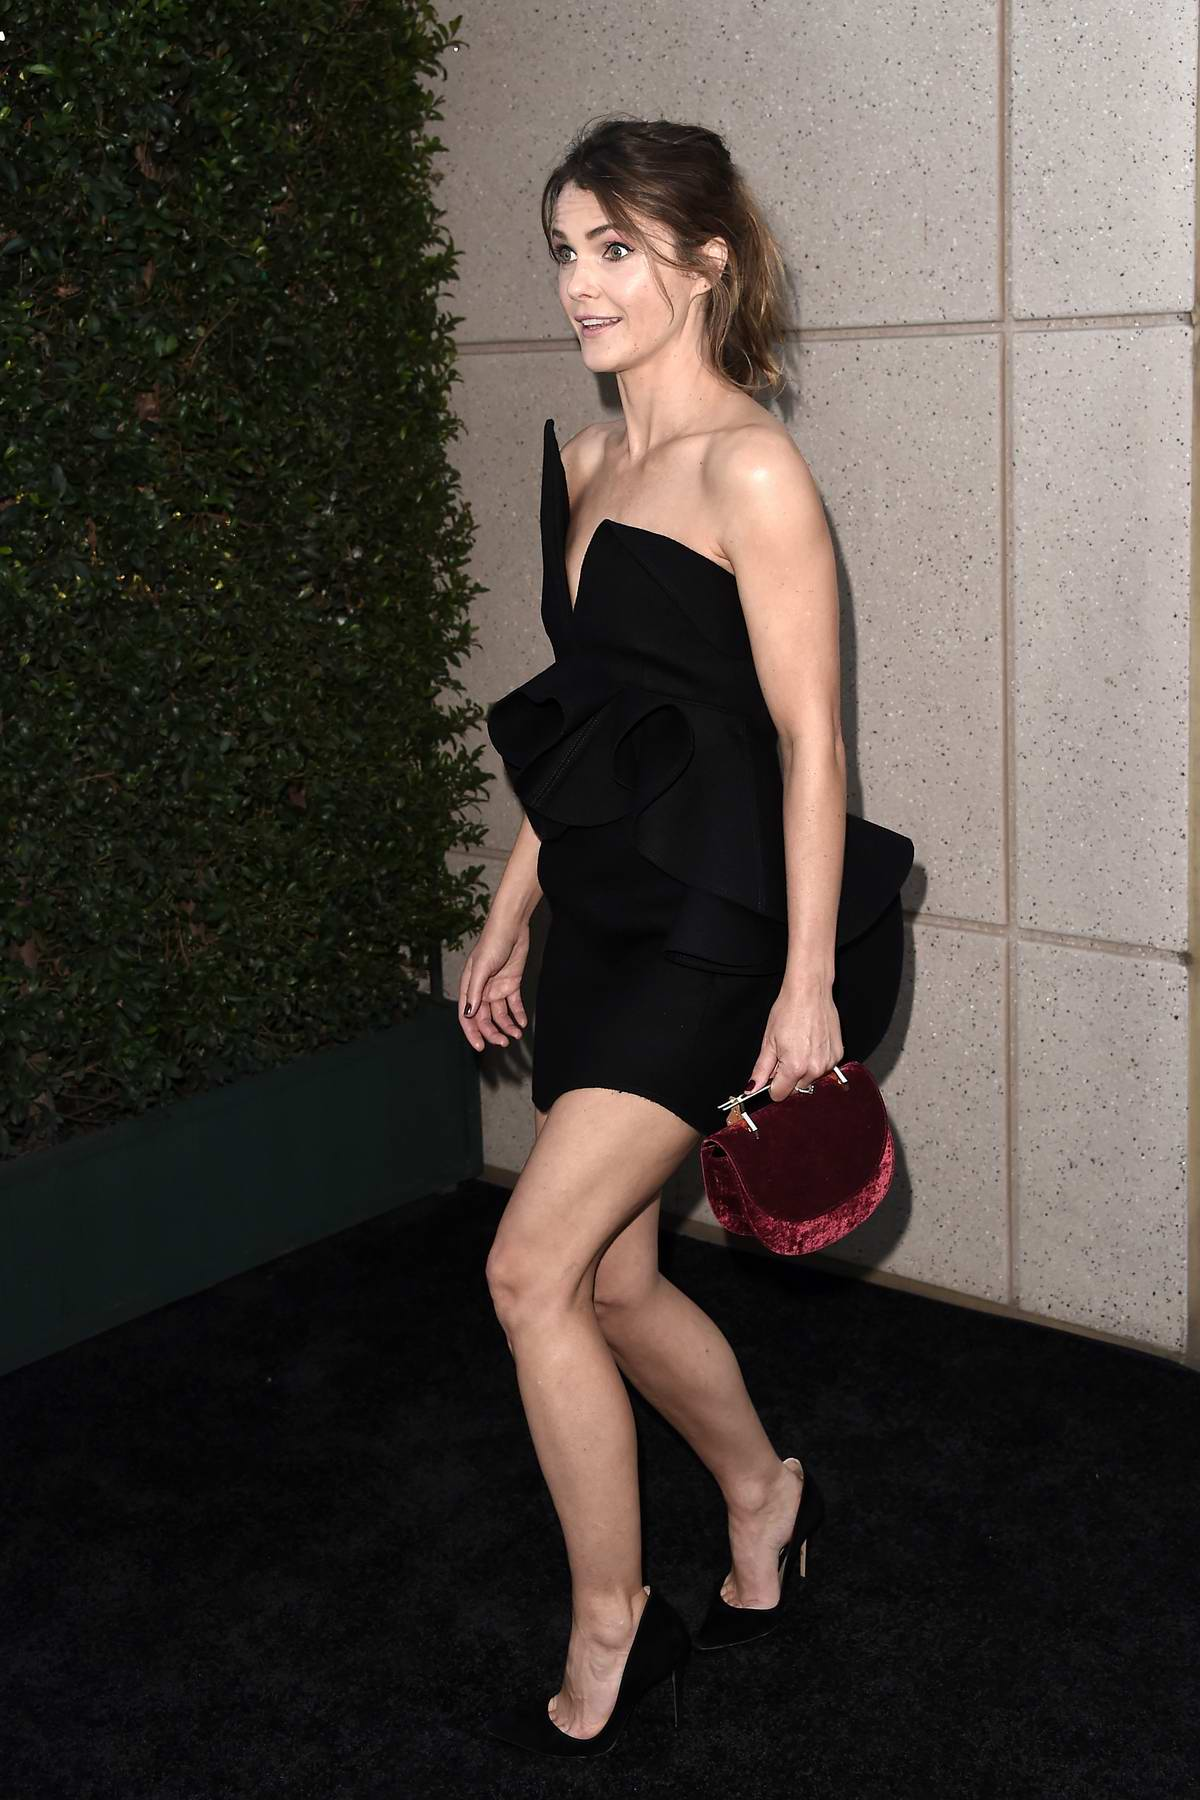 Keri Russell attends Vanity Fair & FX Networks Emmys Party in Los Angeles